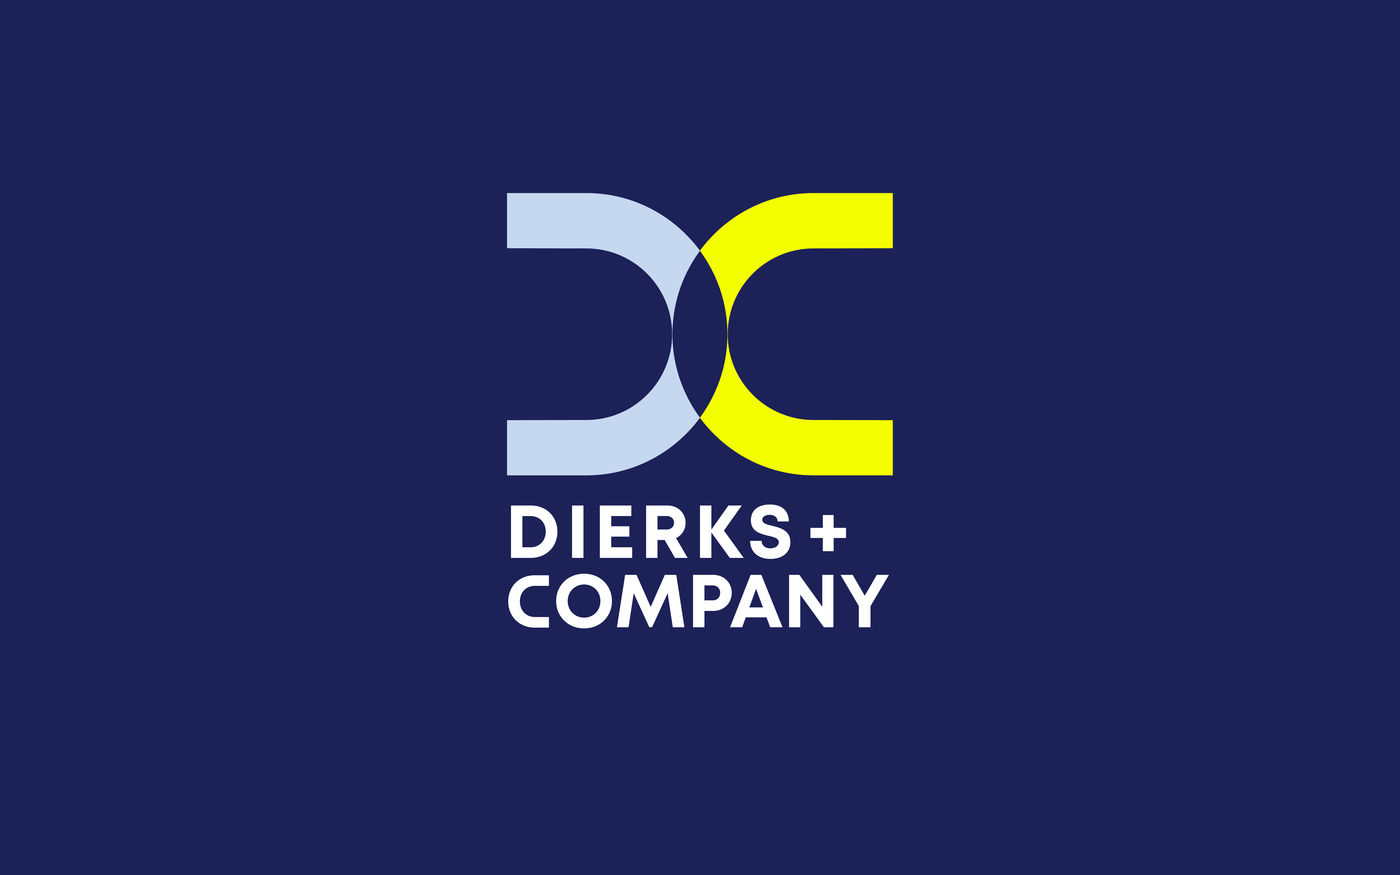 Rechtsreferendar (m/w) - Job Berlin - Career @ Dierks+Company - Post offer form